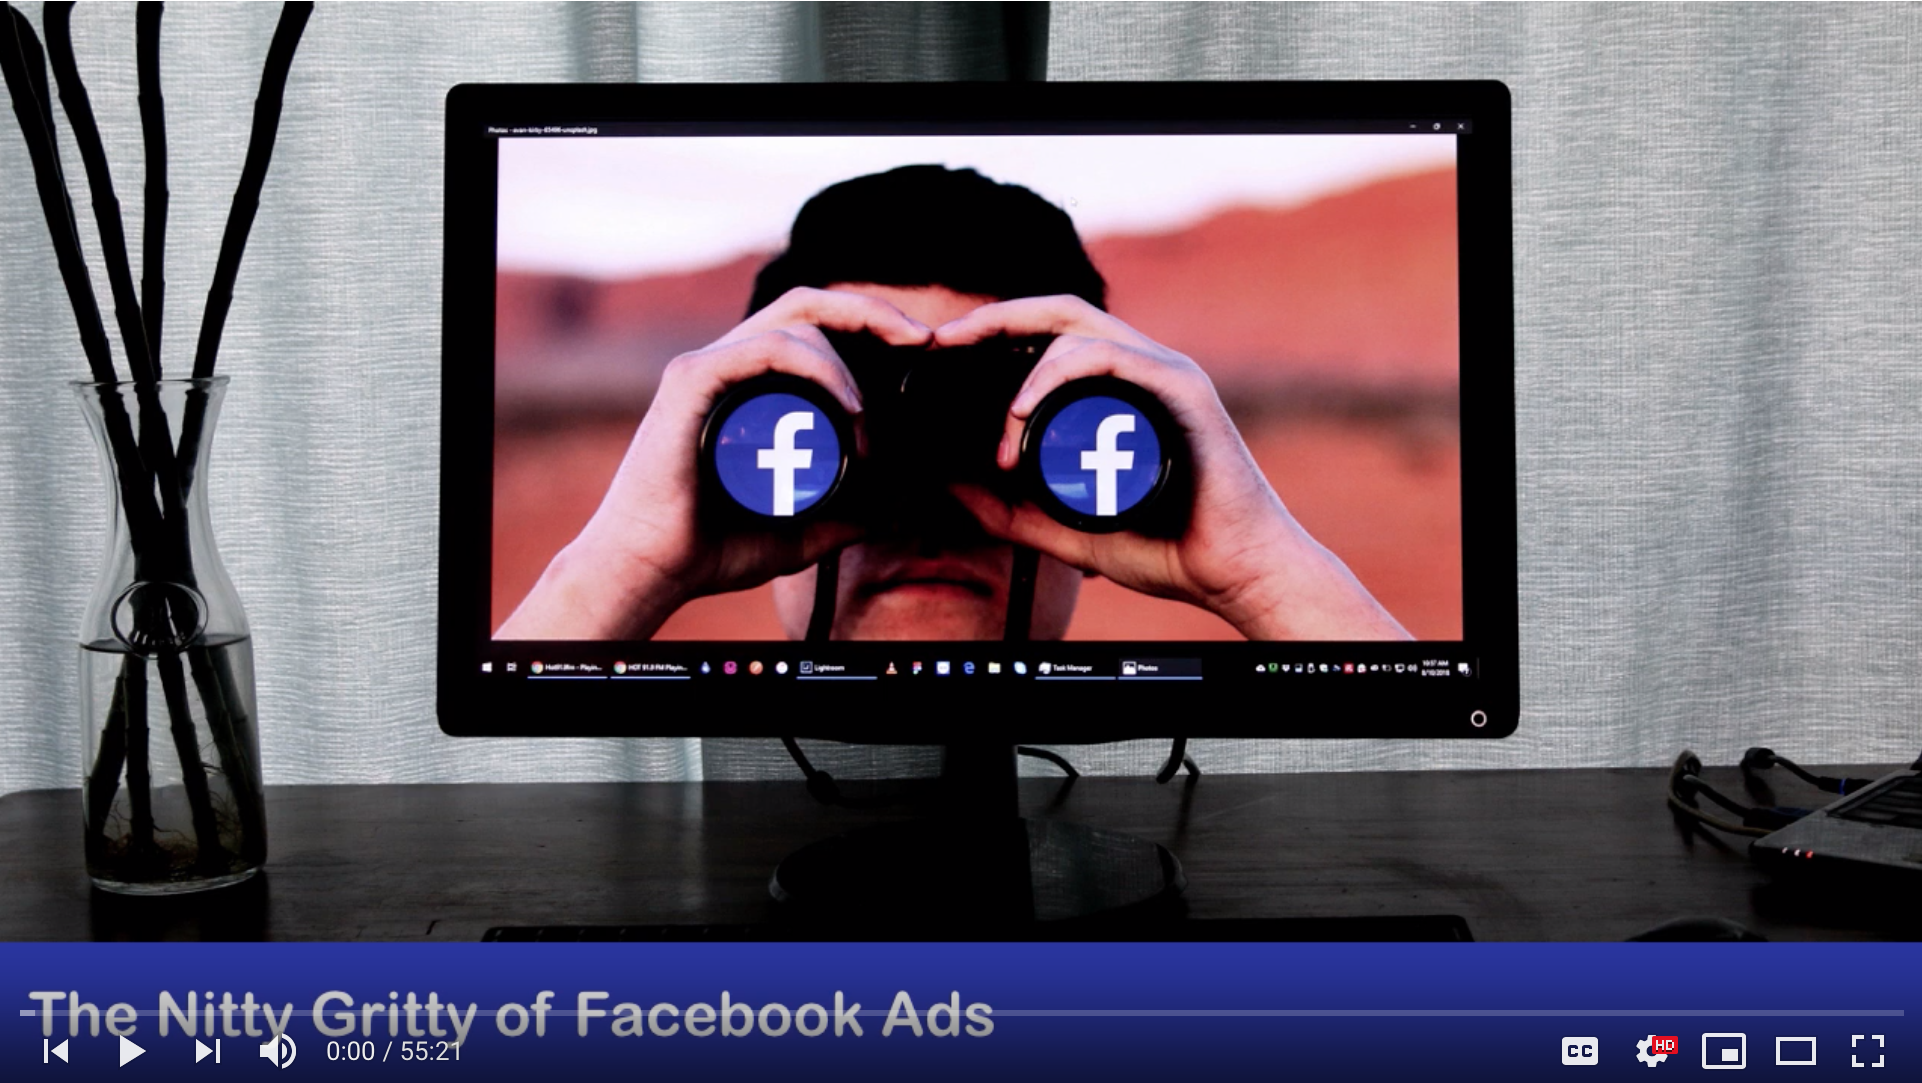 how to build a Facebook ad; how to setup Facebook pixel; what's the difference between boosting and sponsored ads; what do I post on my Facebook business page